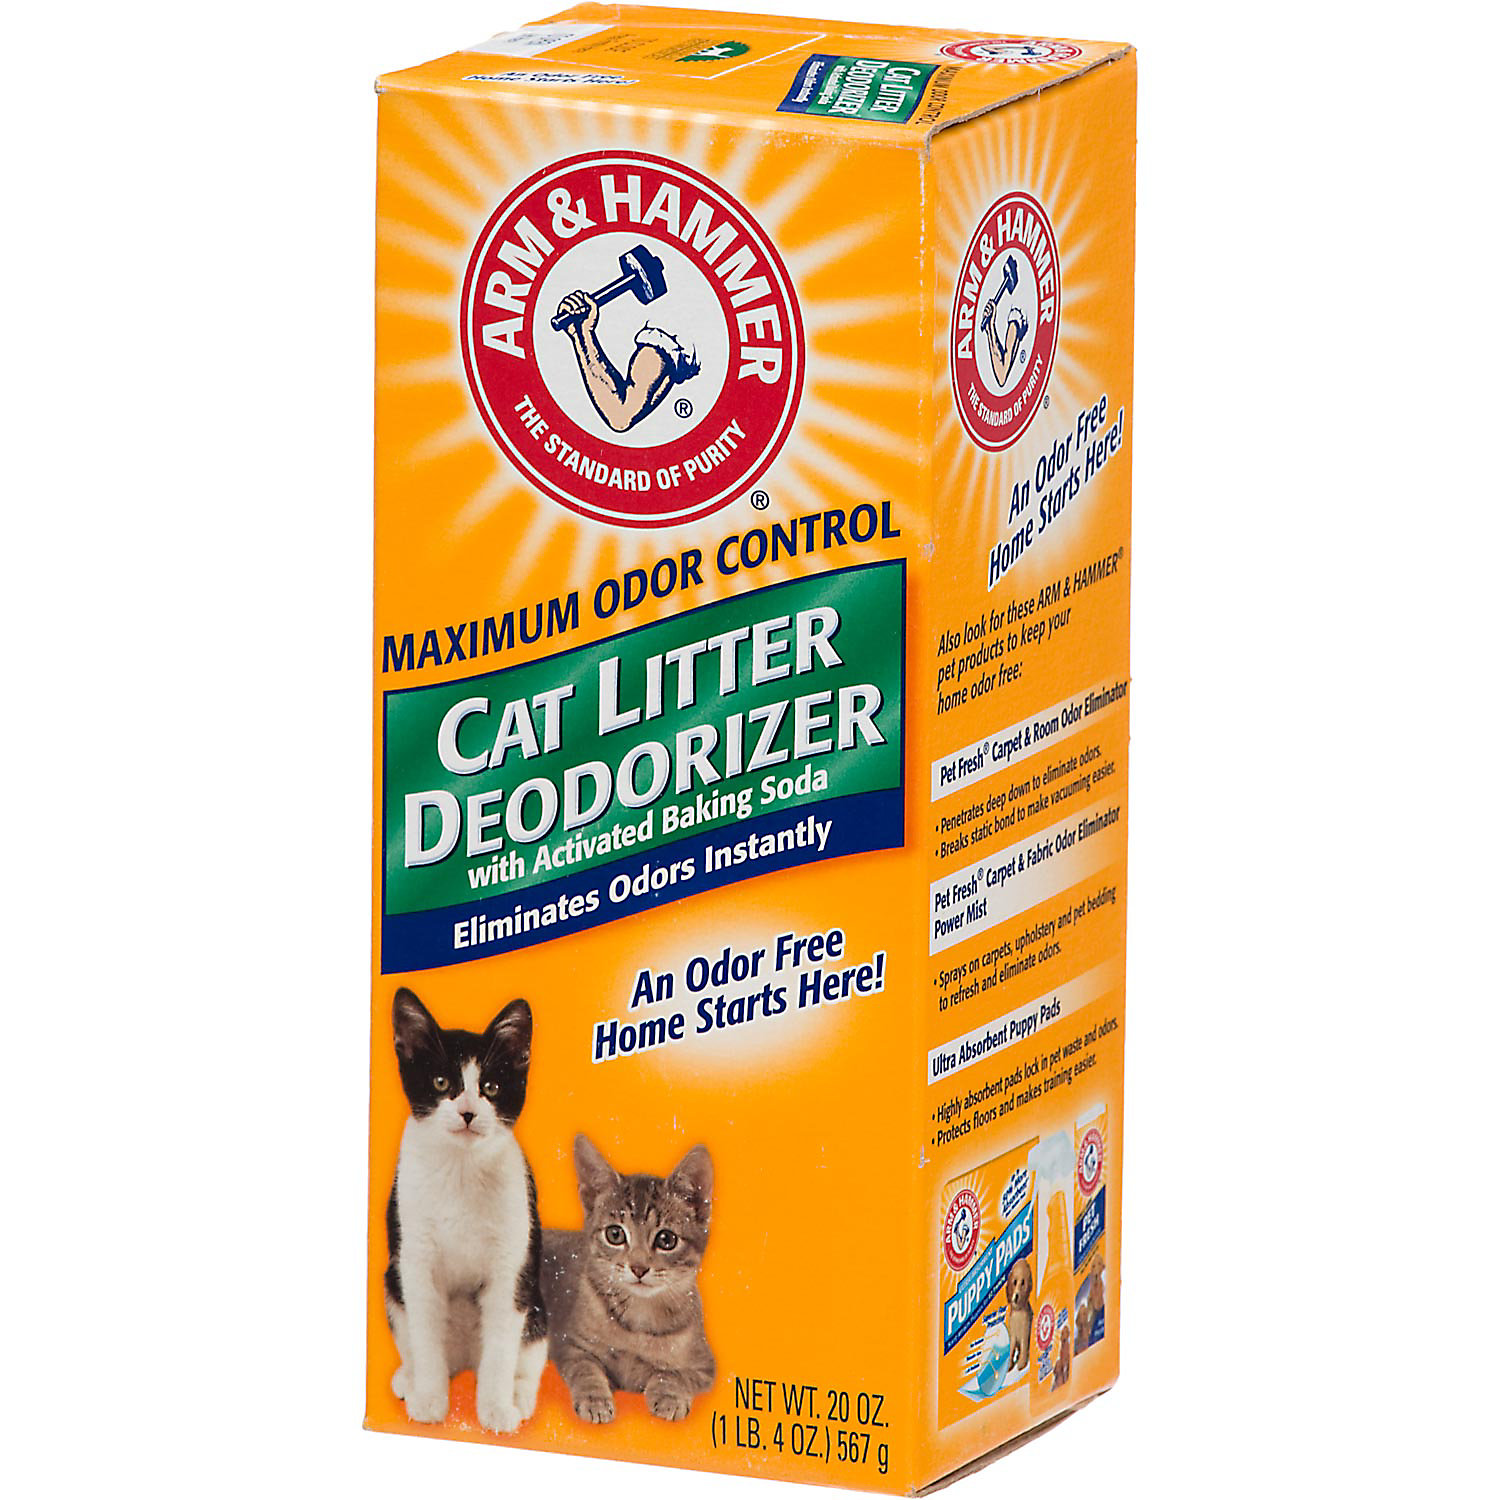 Arm Hammer Cat Litter Deodorizer With Baking Soda 20 Oz.